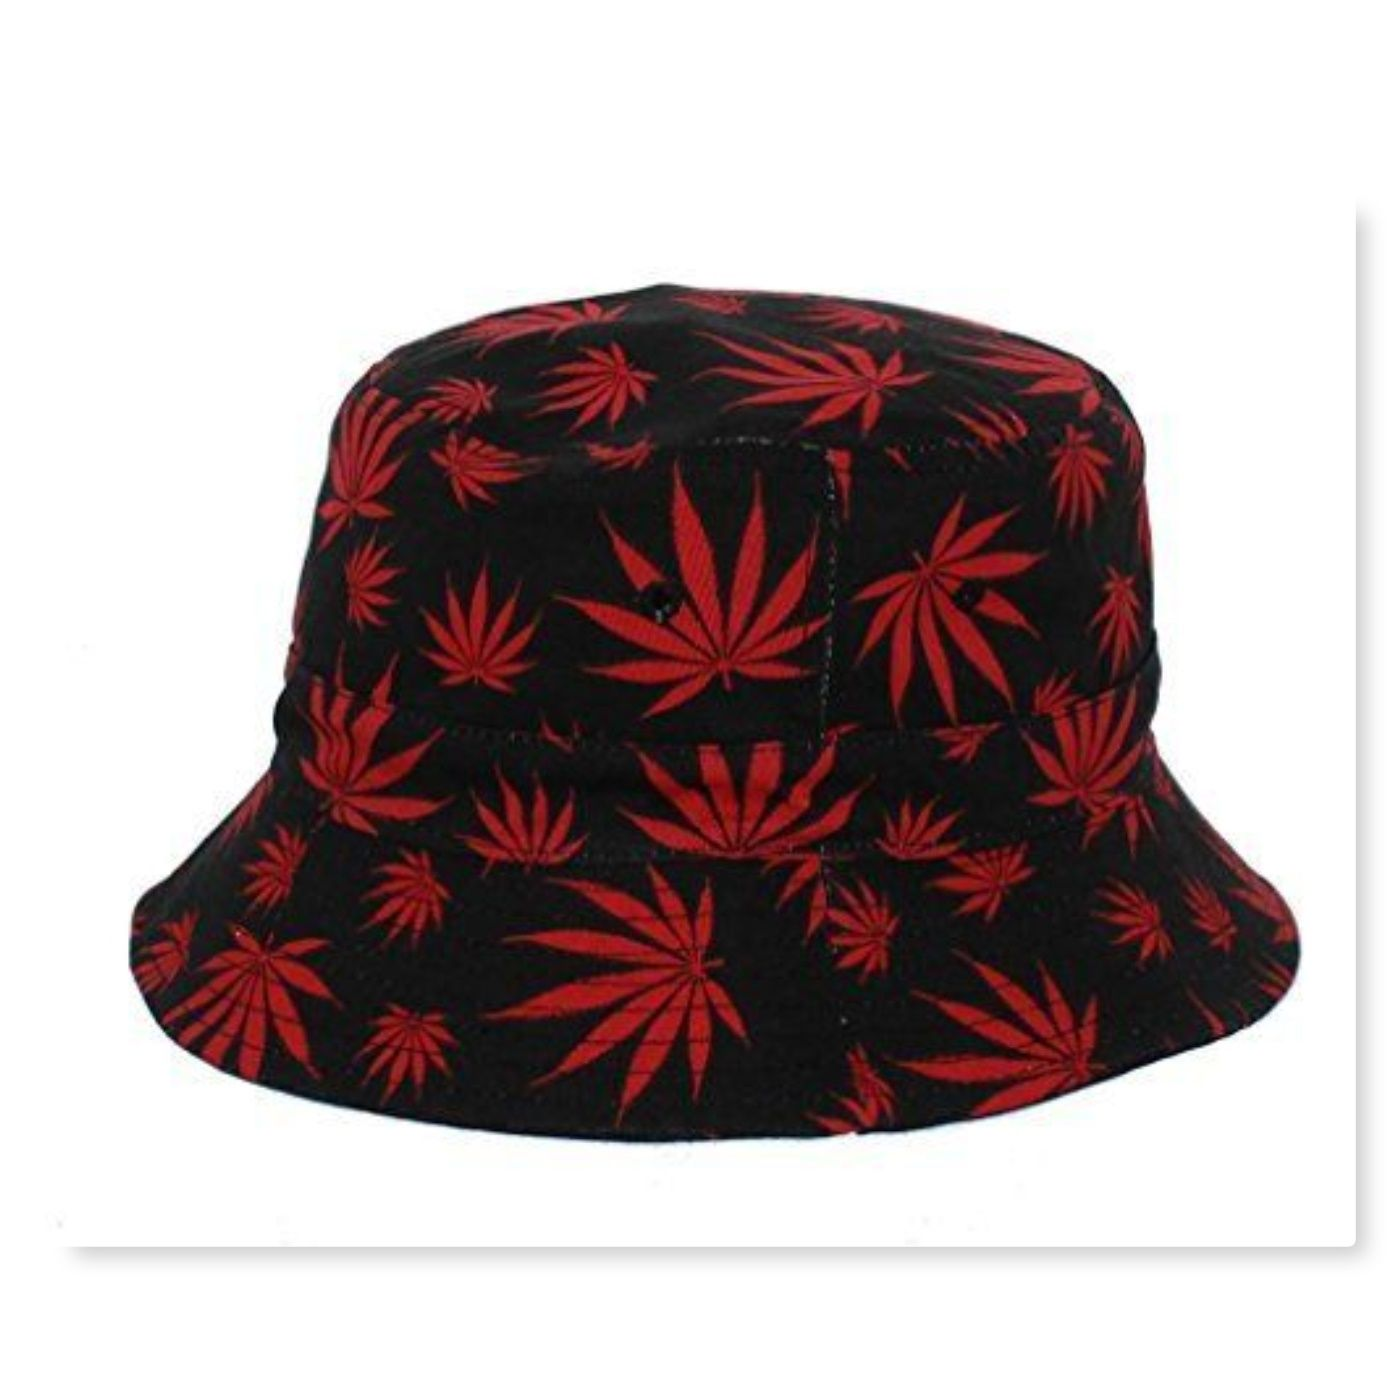 a9ca2b88e30 All Over Print Mary Jane Weed Printed Bucket Hat in Red 100% Cotton One  size fits most